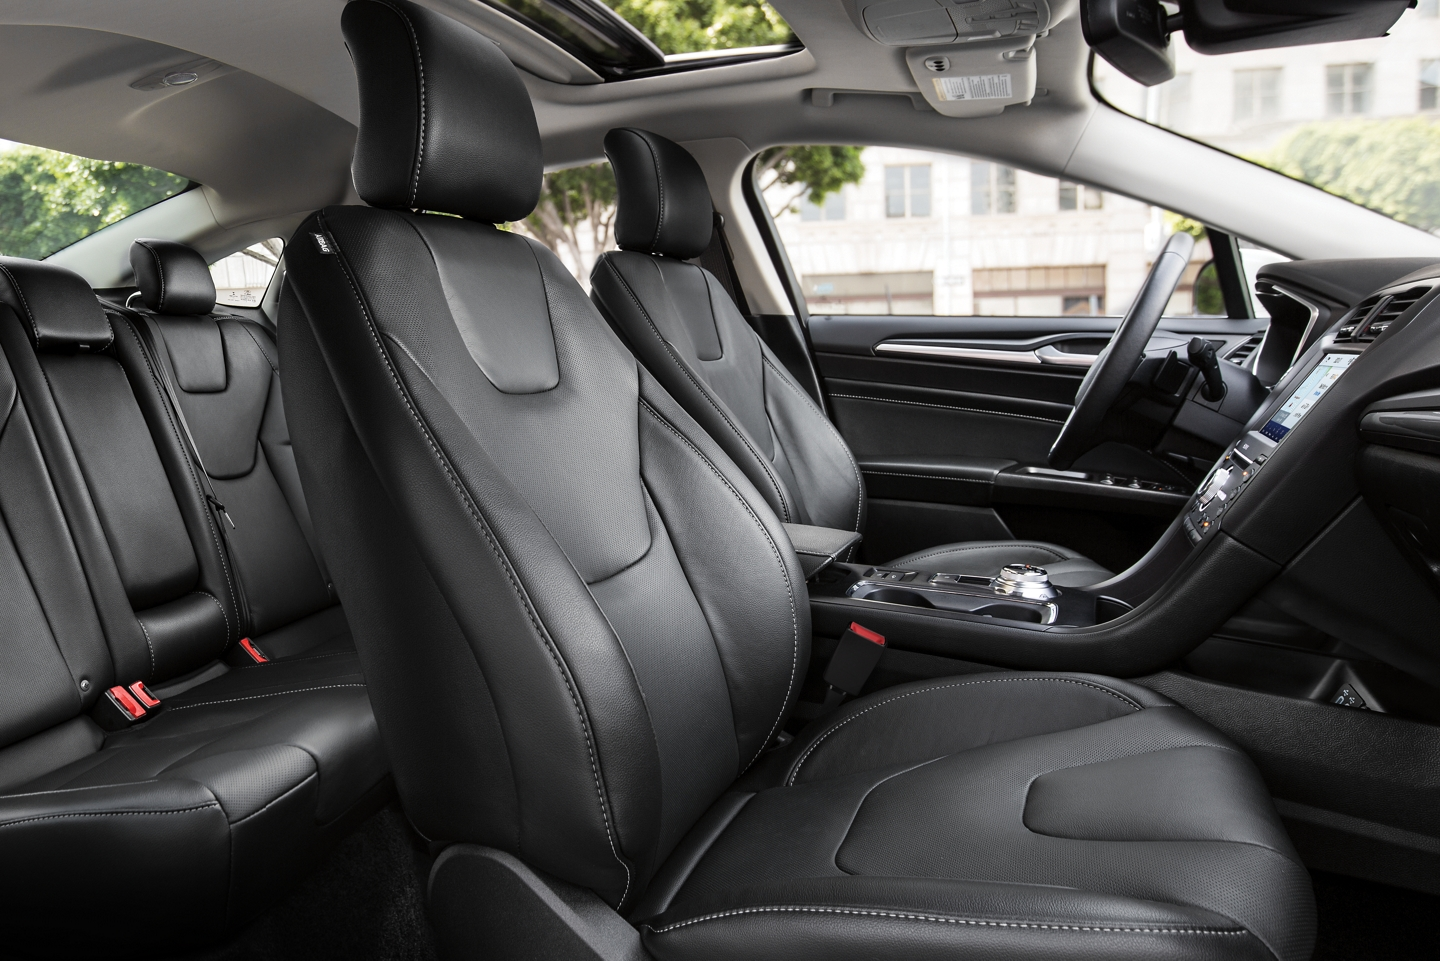 Upscale Upholstery in the 2020 Fusion